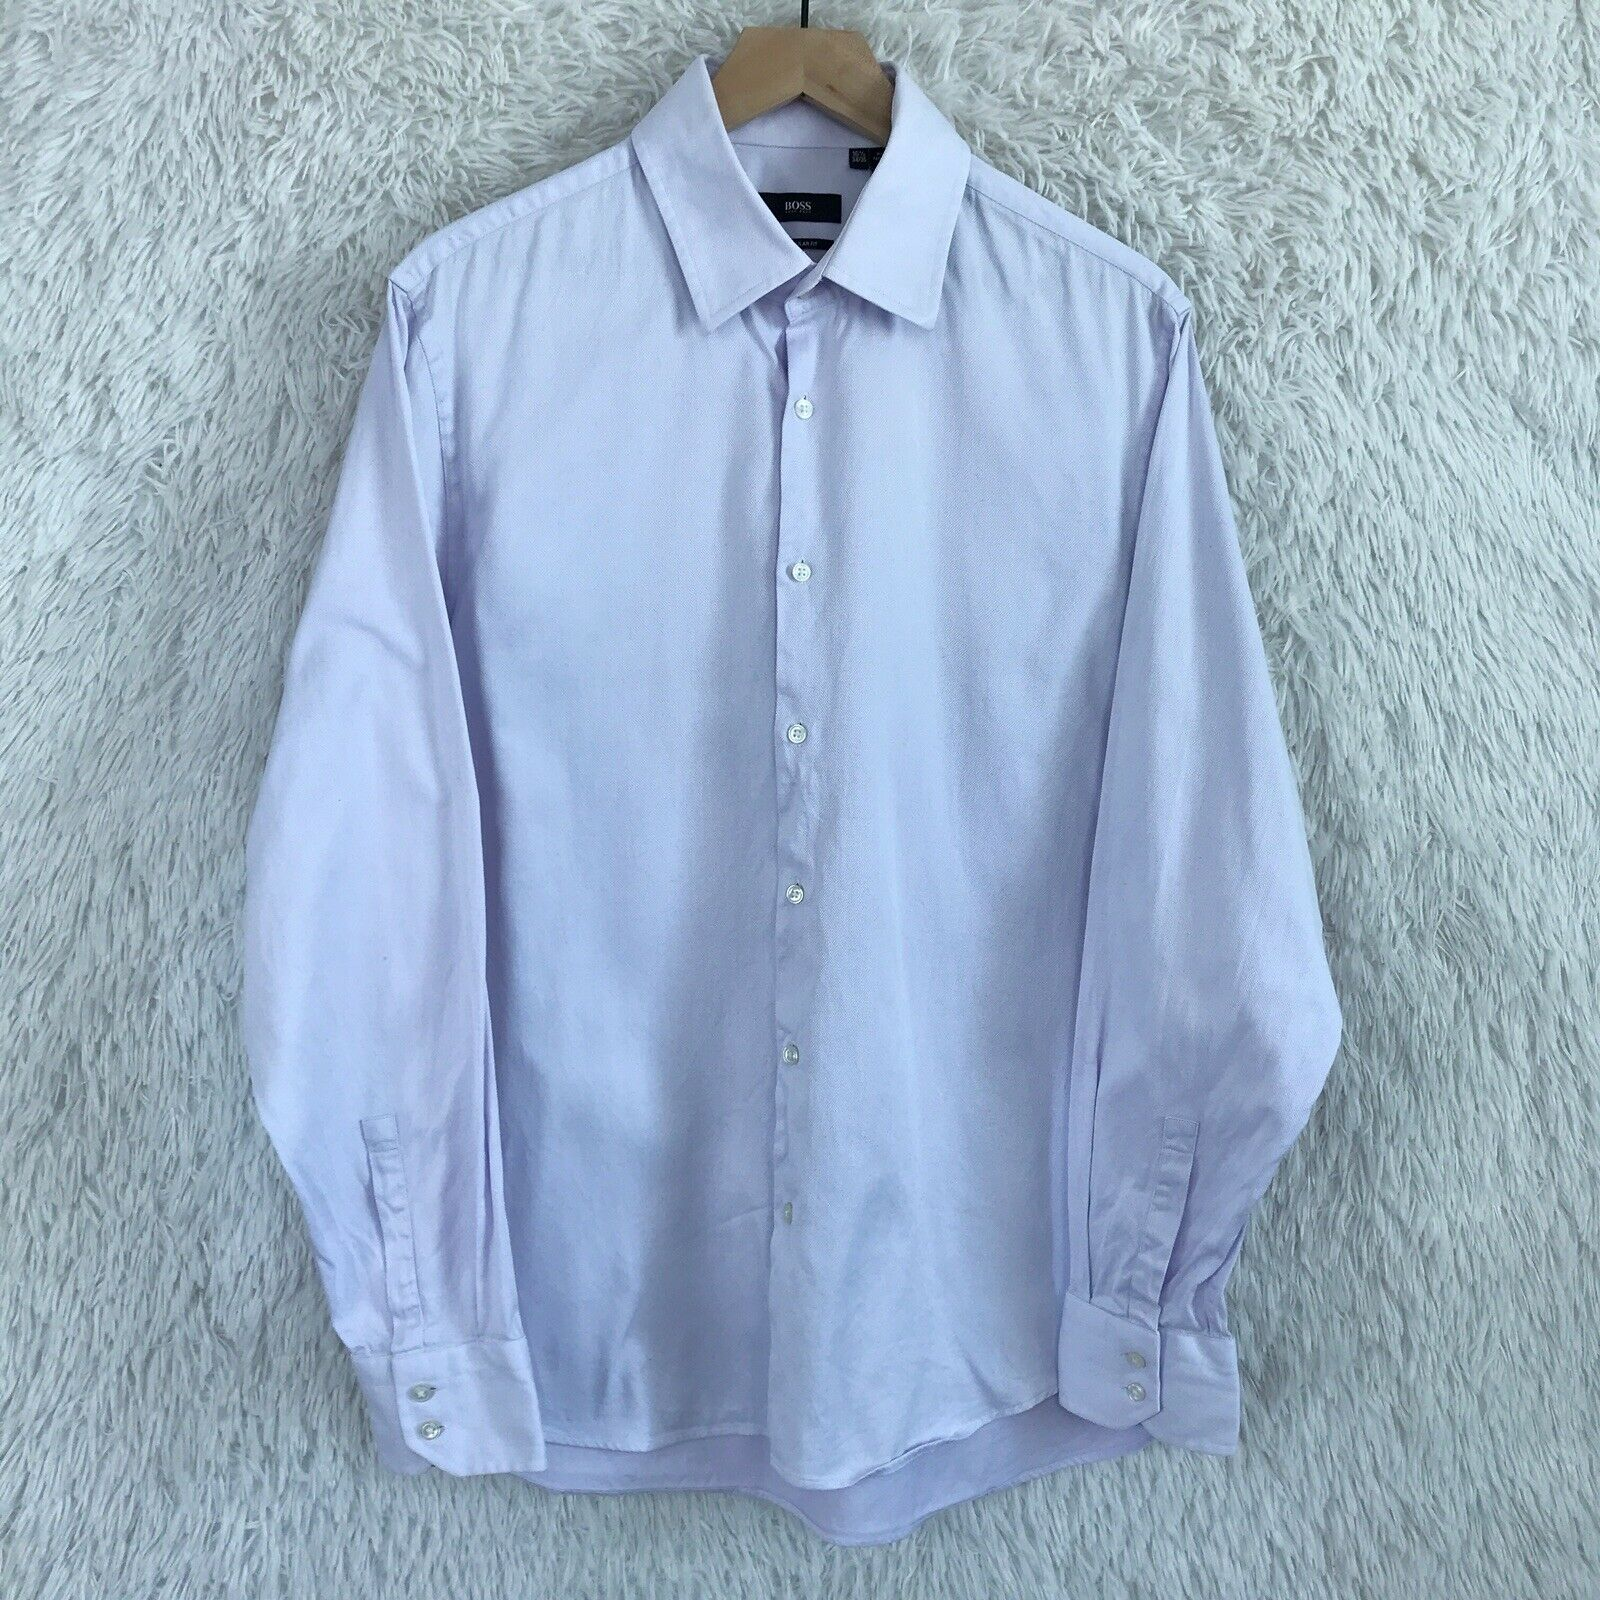 618145e1080 Hugo Boss 16 2 34 35 Light Purple Button Down Dress Shirt Regular ...